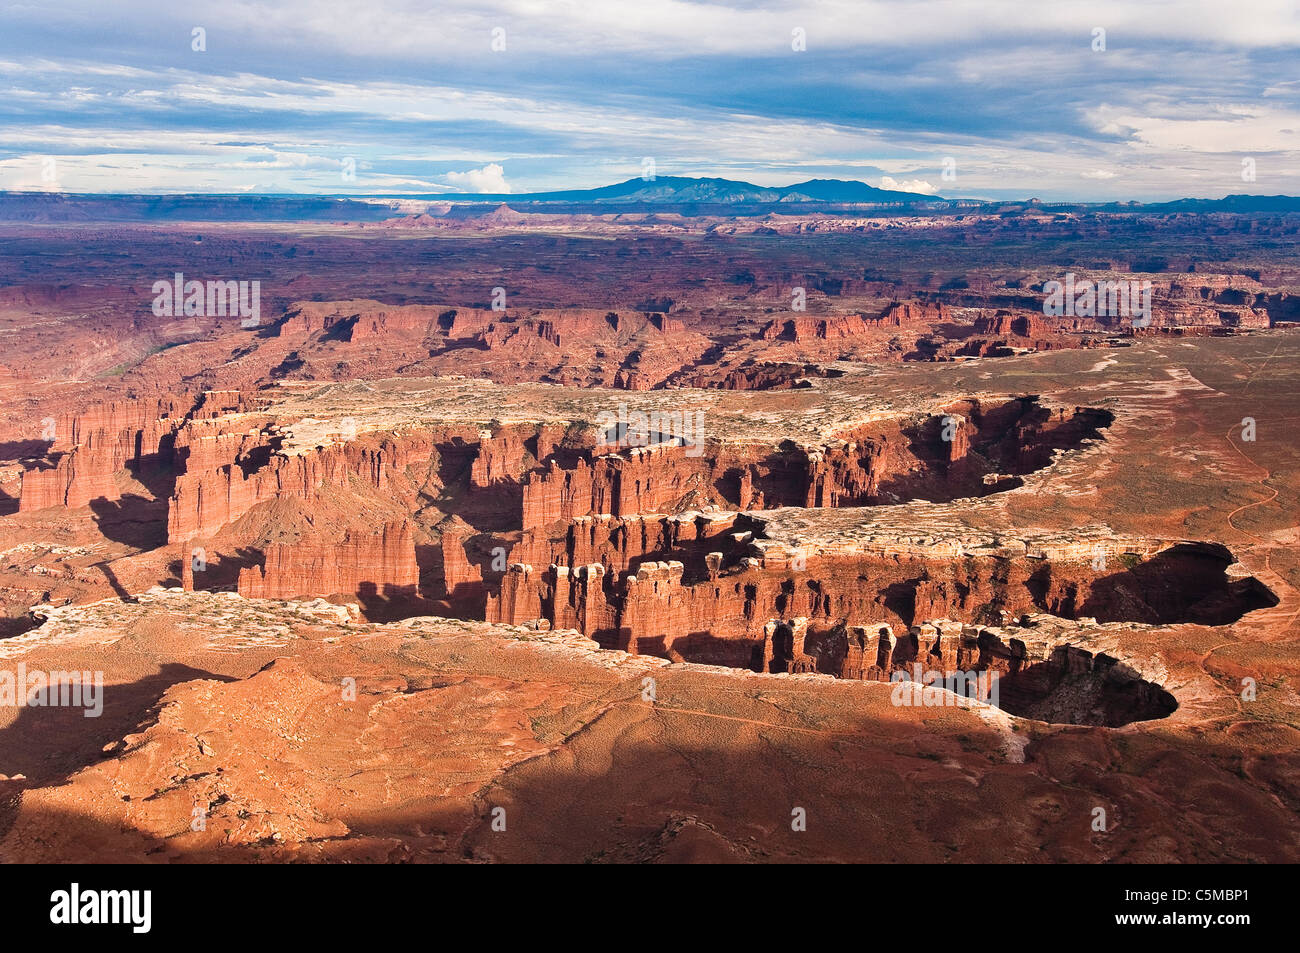 Sunset at Grand View Point Overlook, Canyonlands National Park, Utah, USA - Stock Image